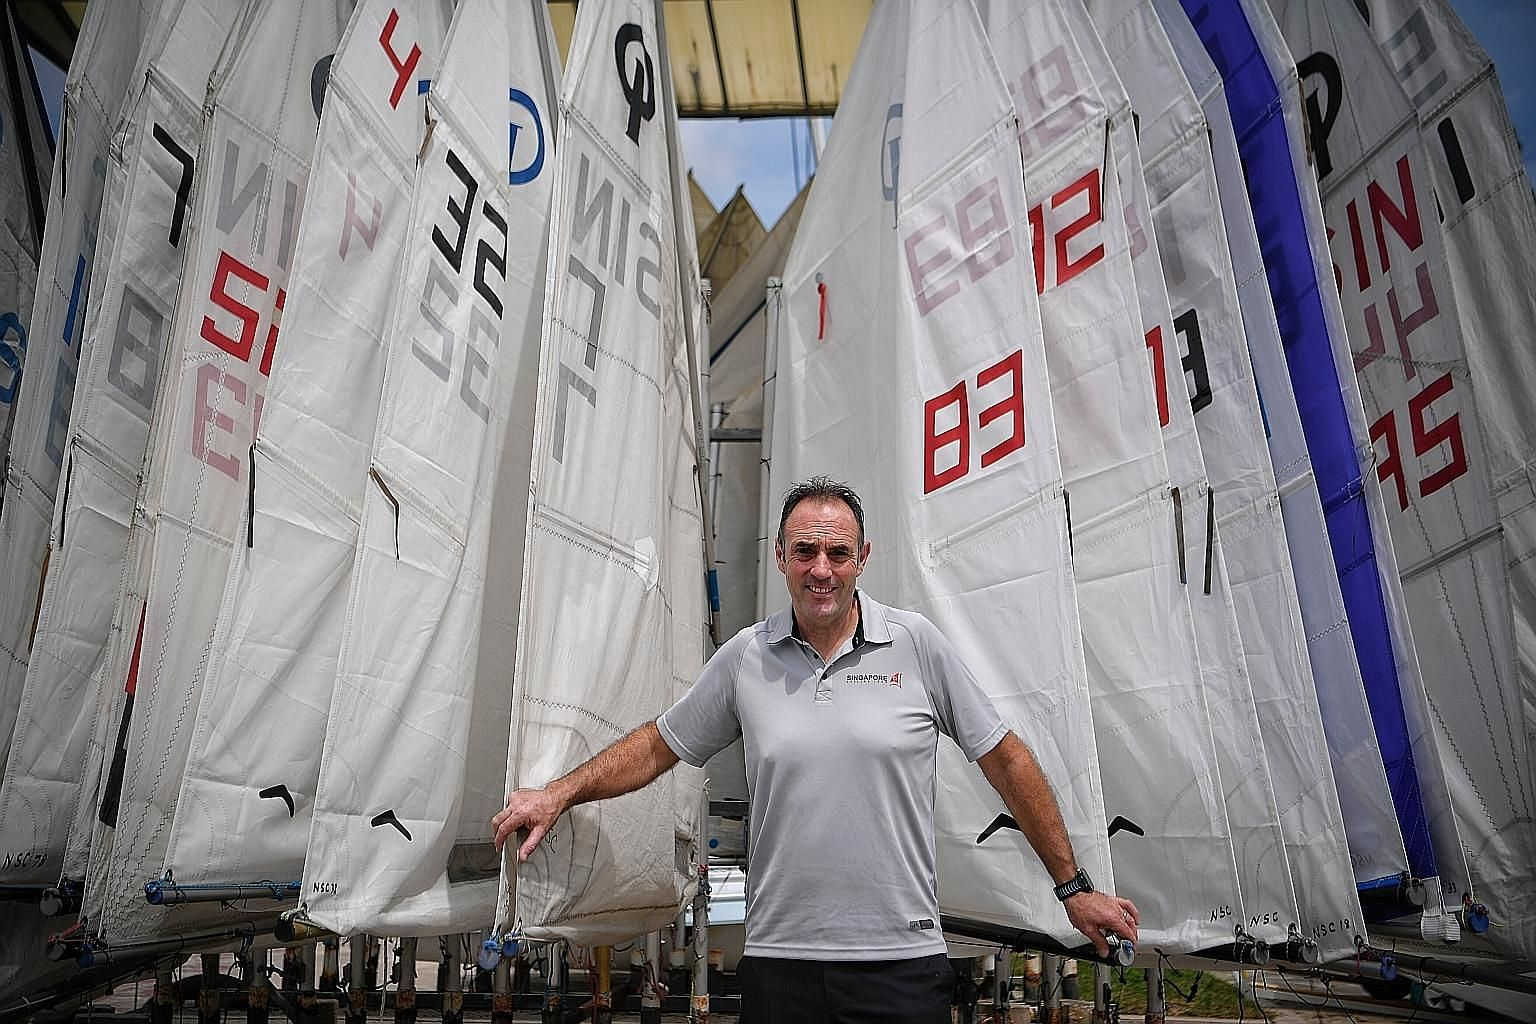 Mr Peter Cunningham was with the British sailing team at three Olympics, during which they topped the medal tally.